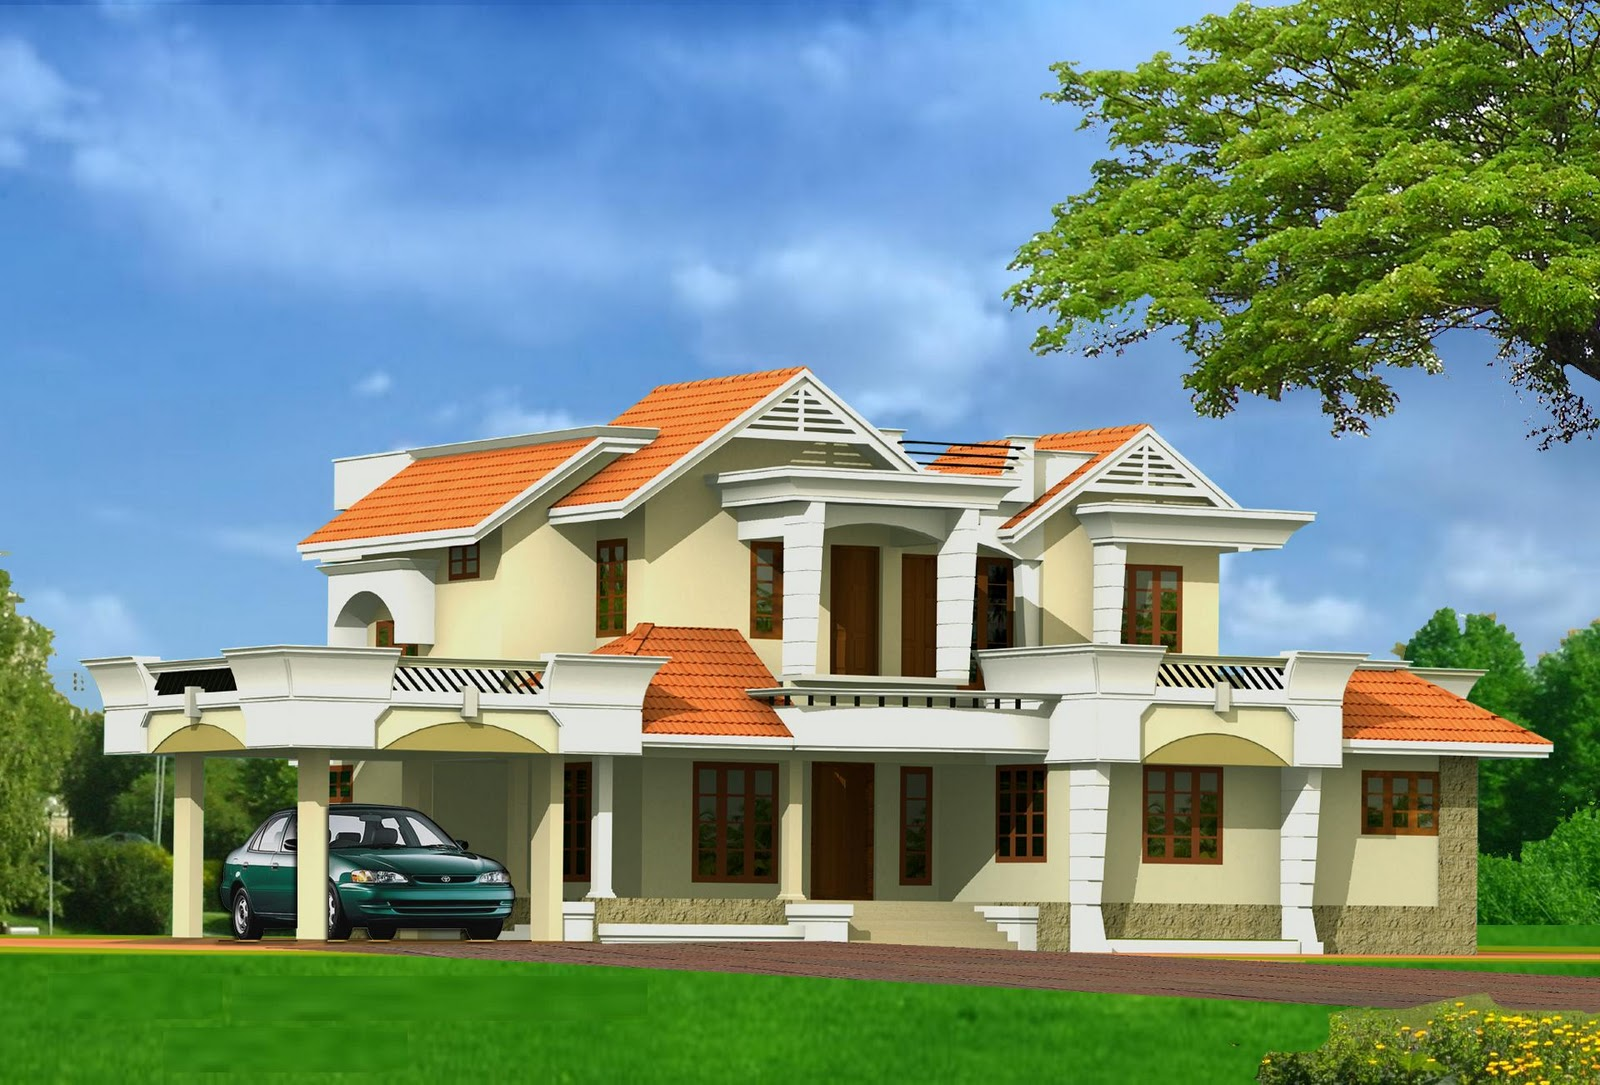 House plans and design architectural designs of for Home structure design